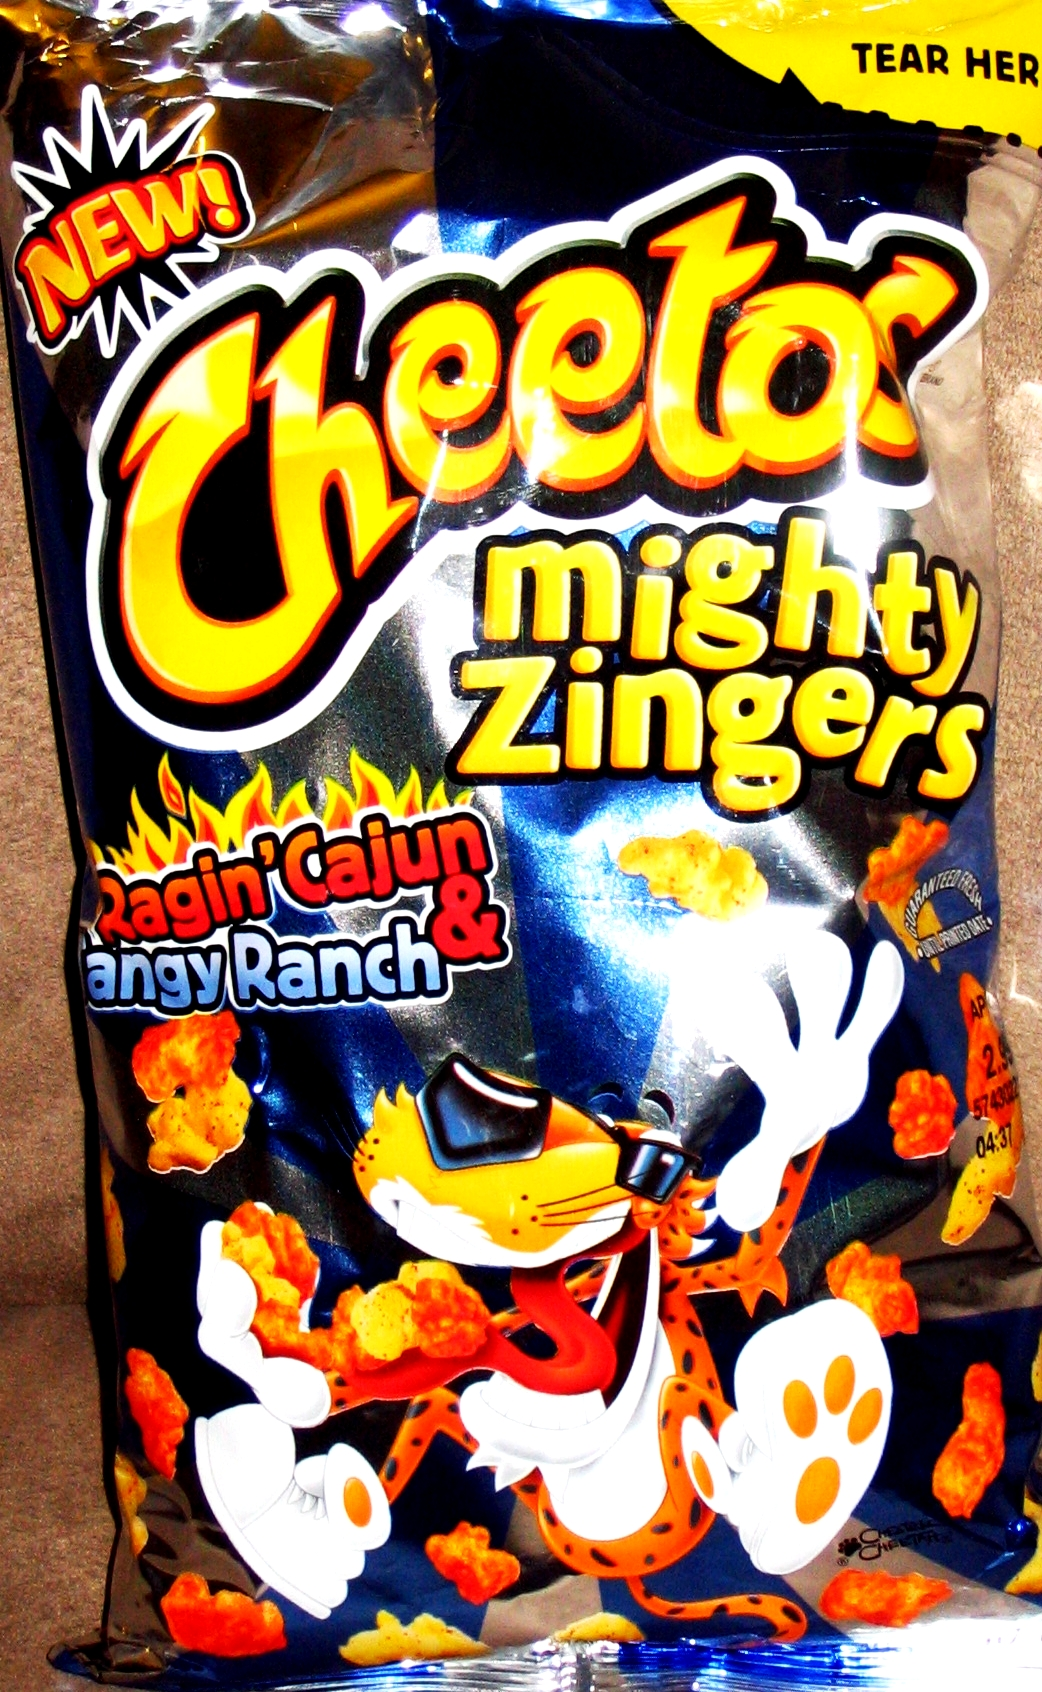 Fullsize Of Chipotle Ranch Cheetos